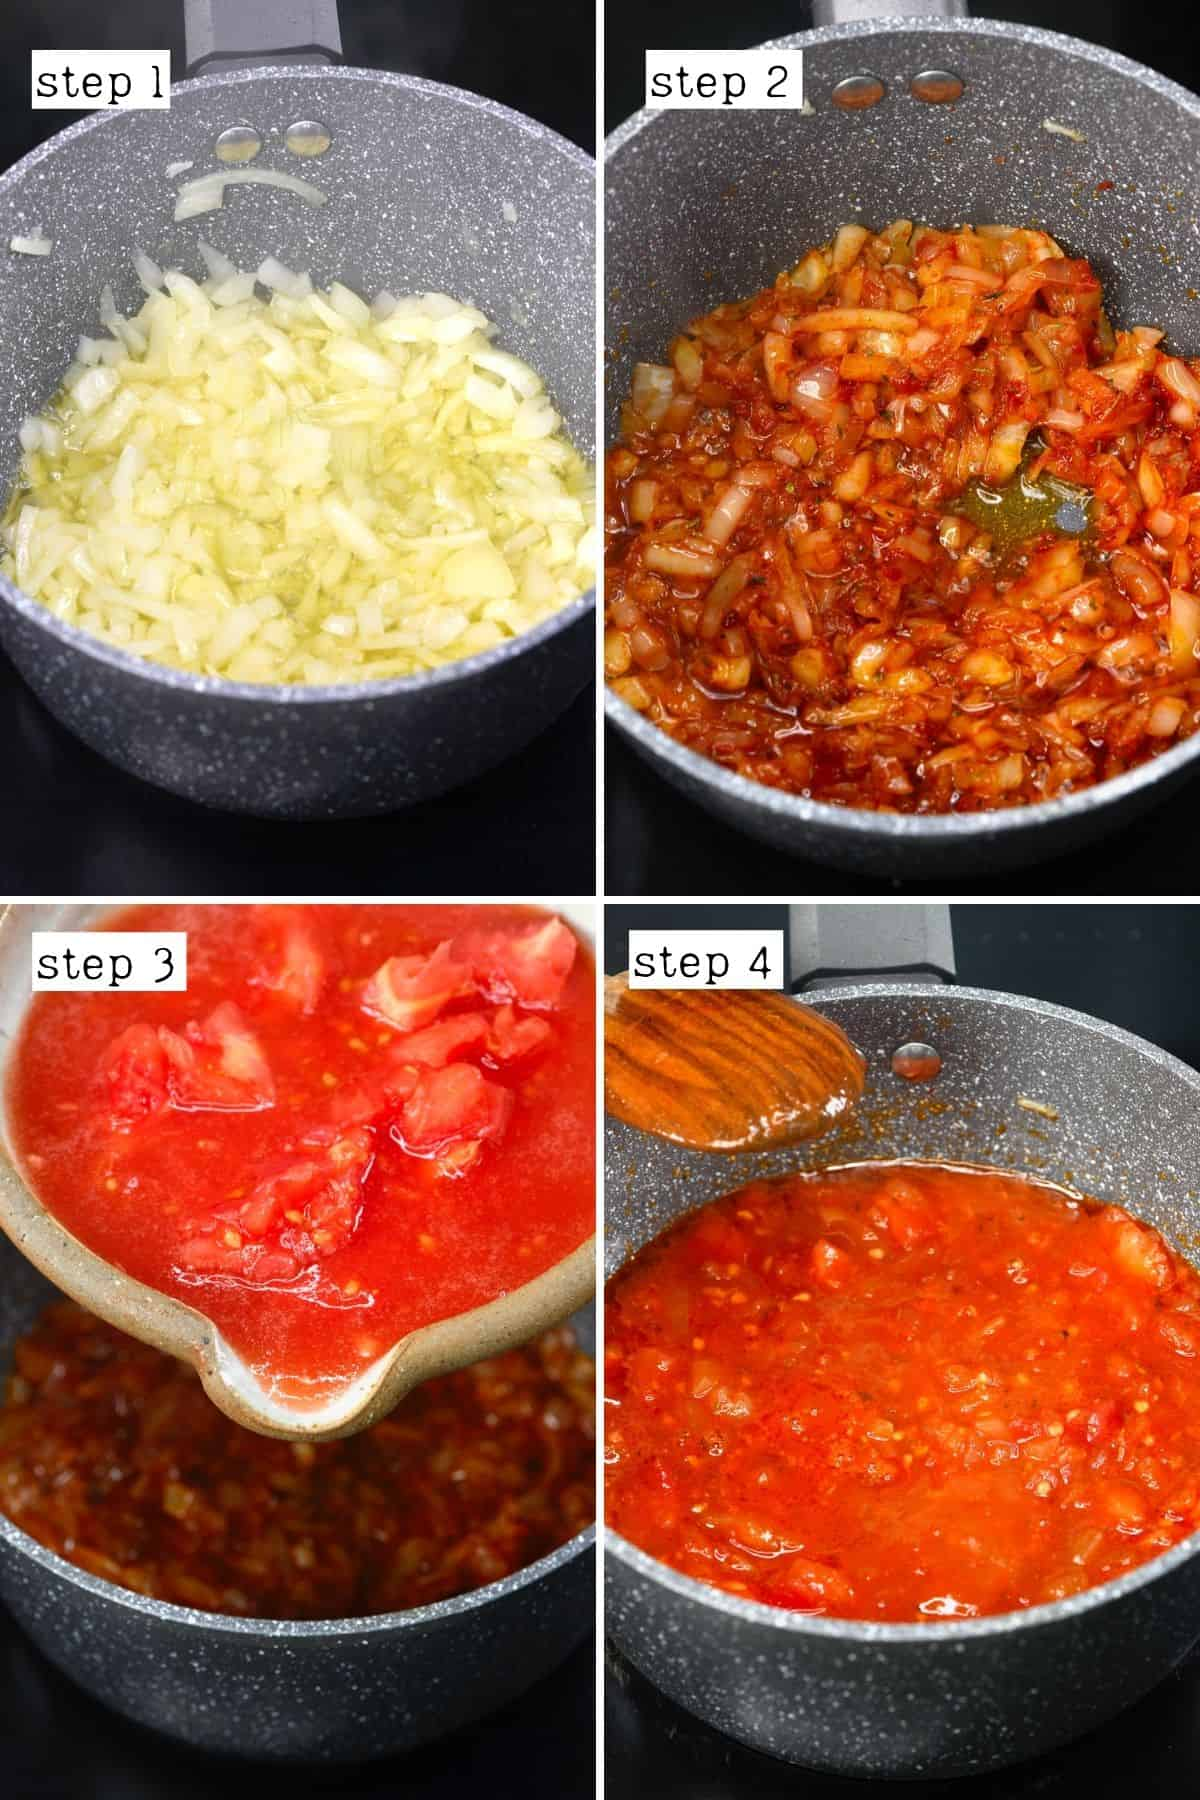 Steps for cooking onion and tomatoes